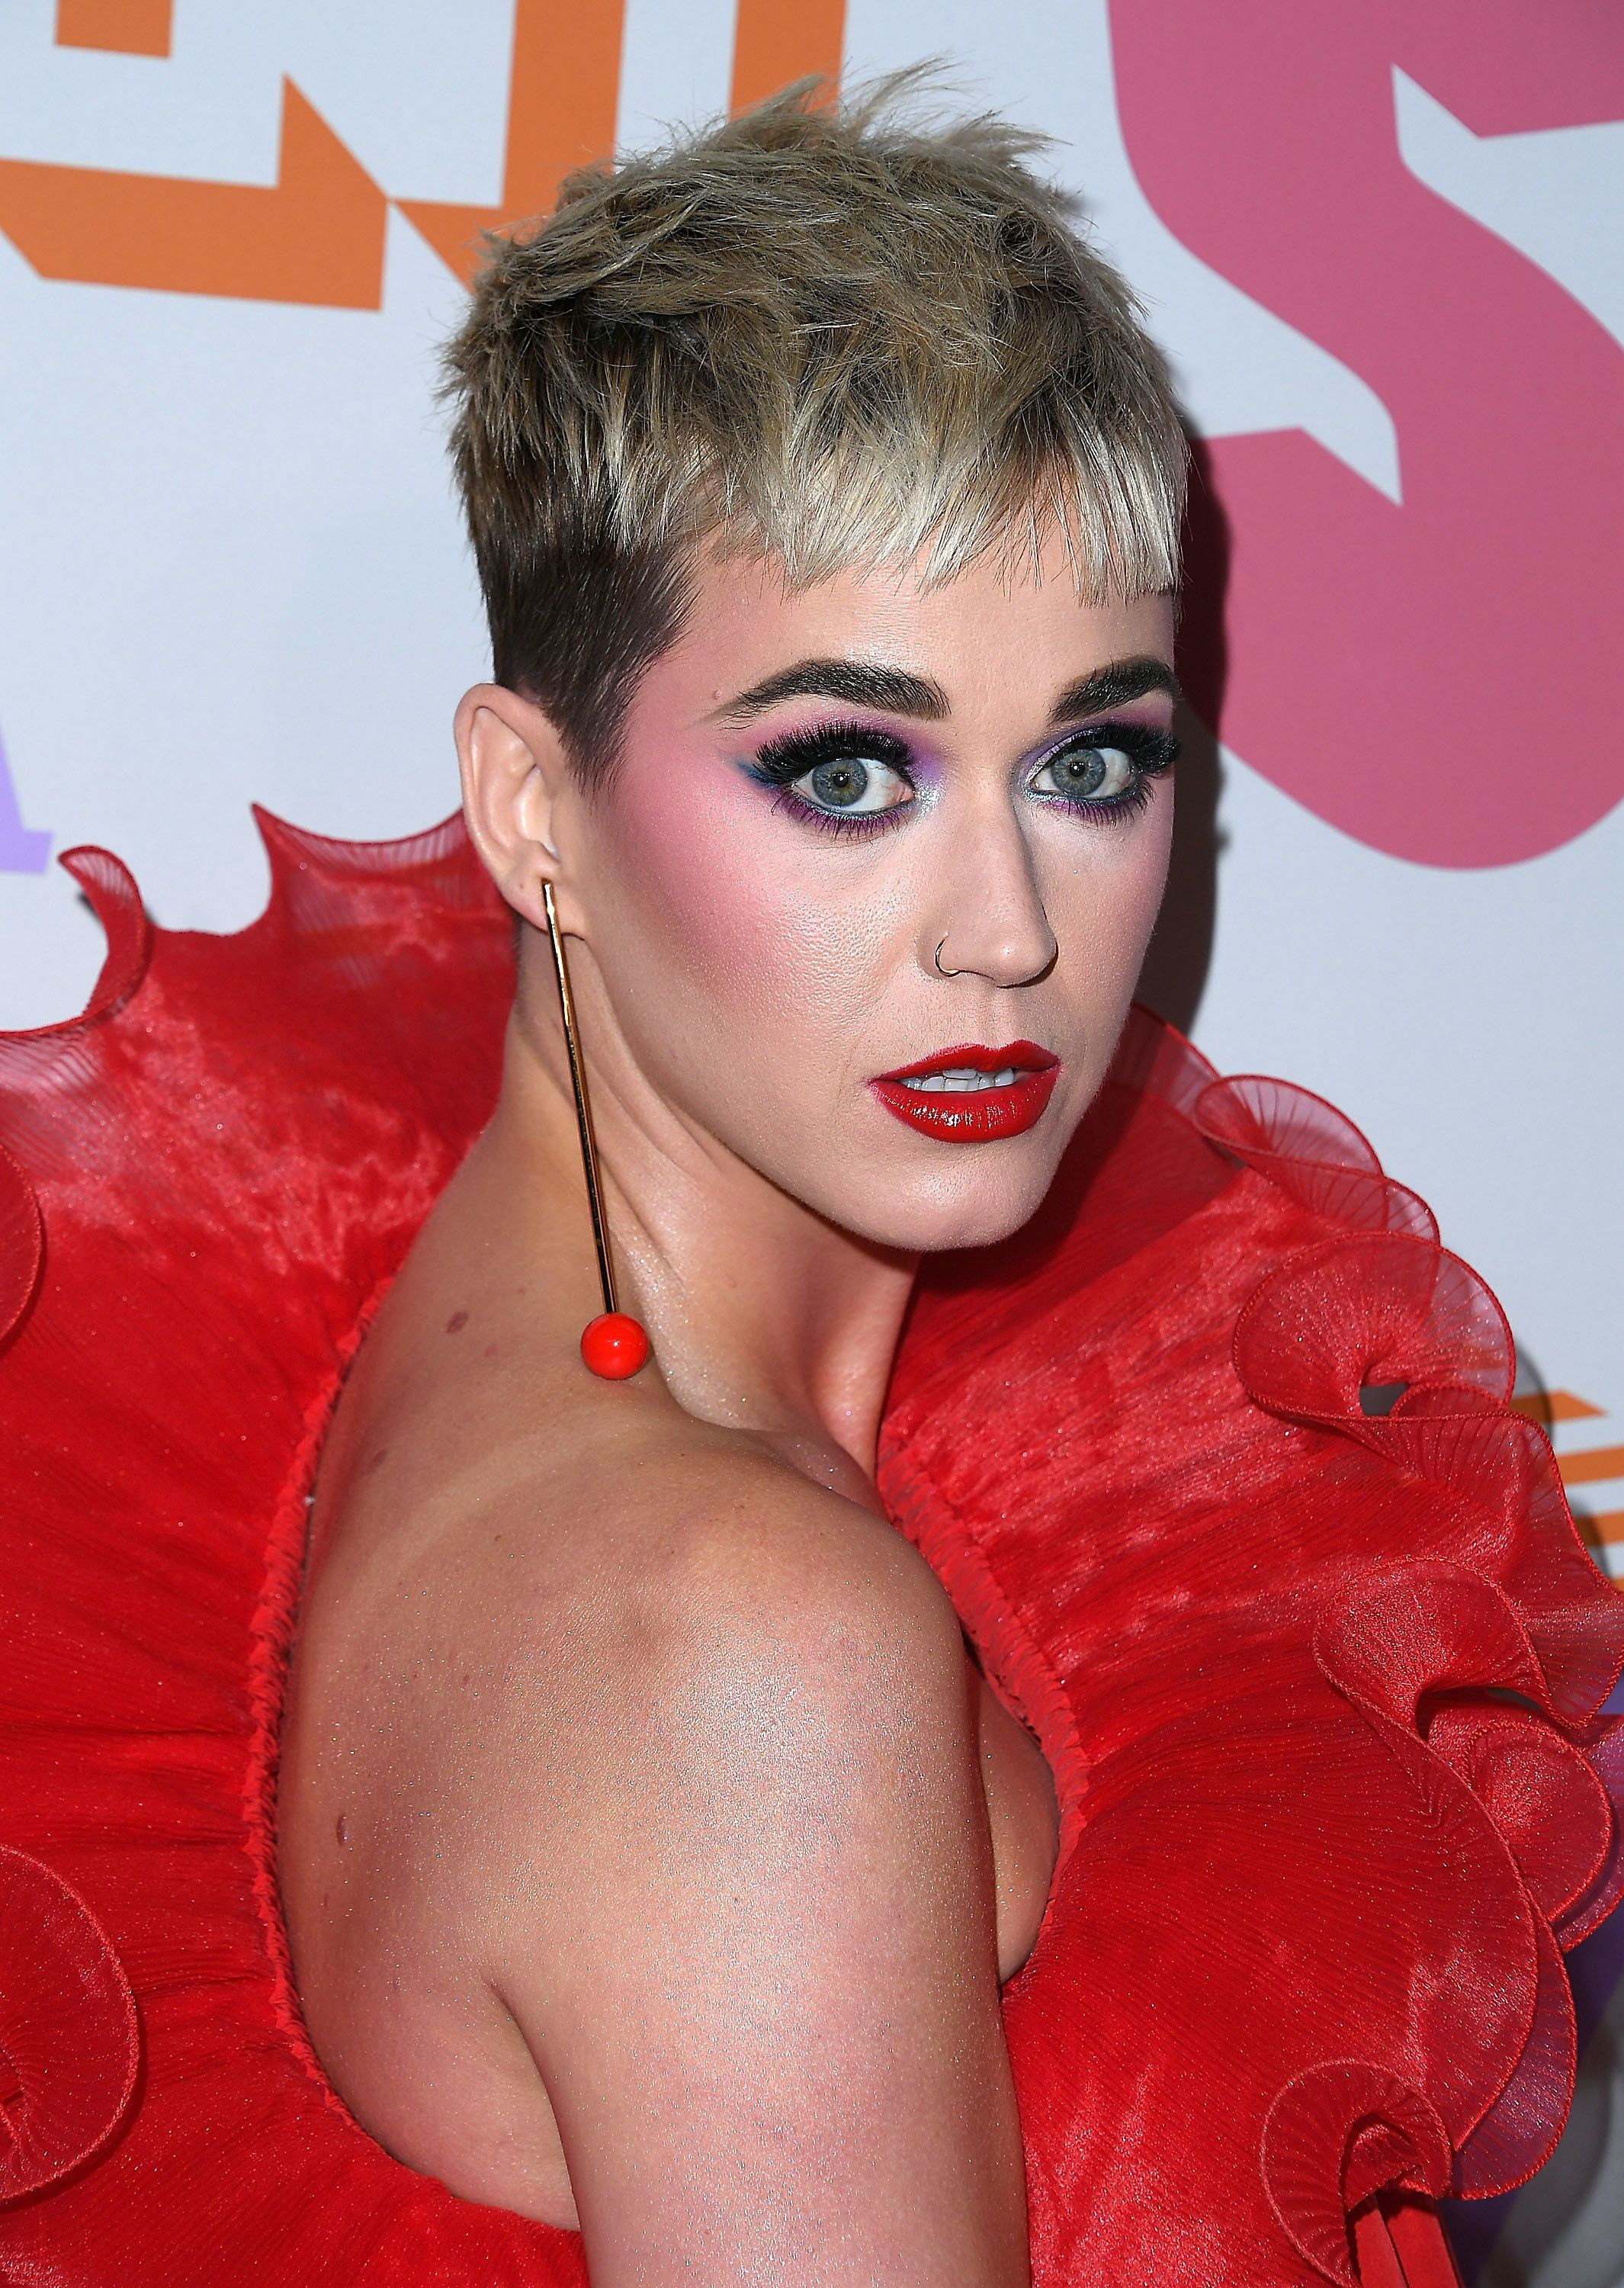 Katy Perry Admits She Would Rewrite 'I Kissed A Girl' Because Of 'Bisexual Stereotypes'